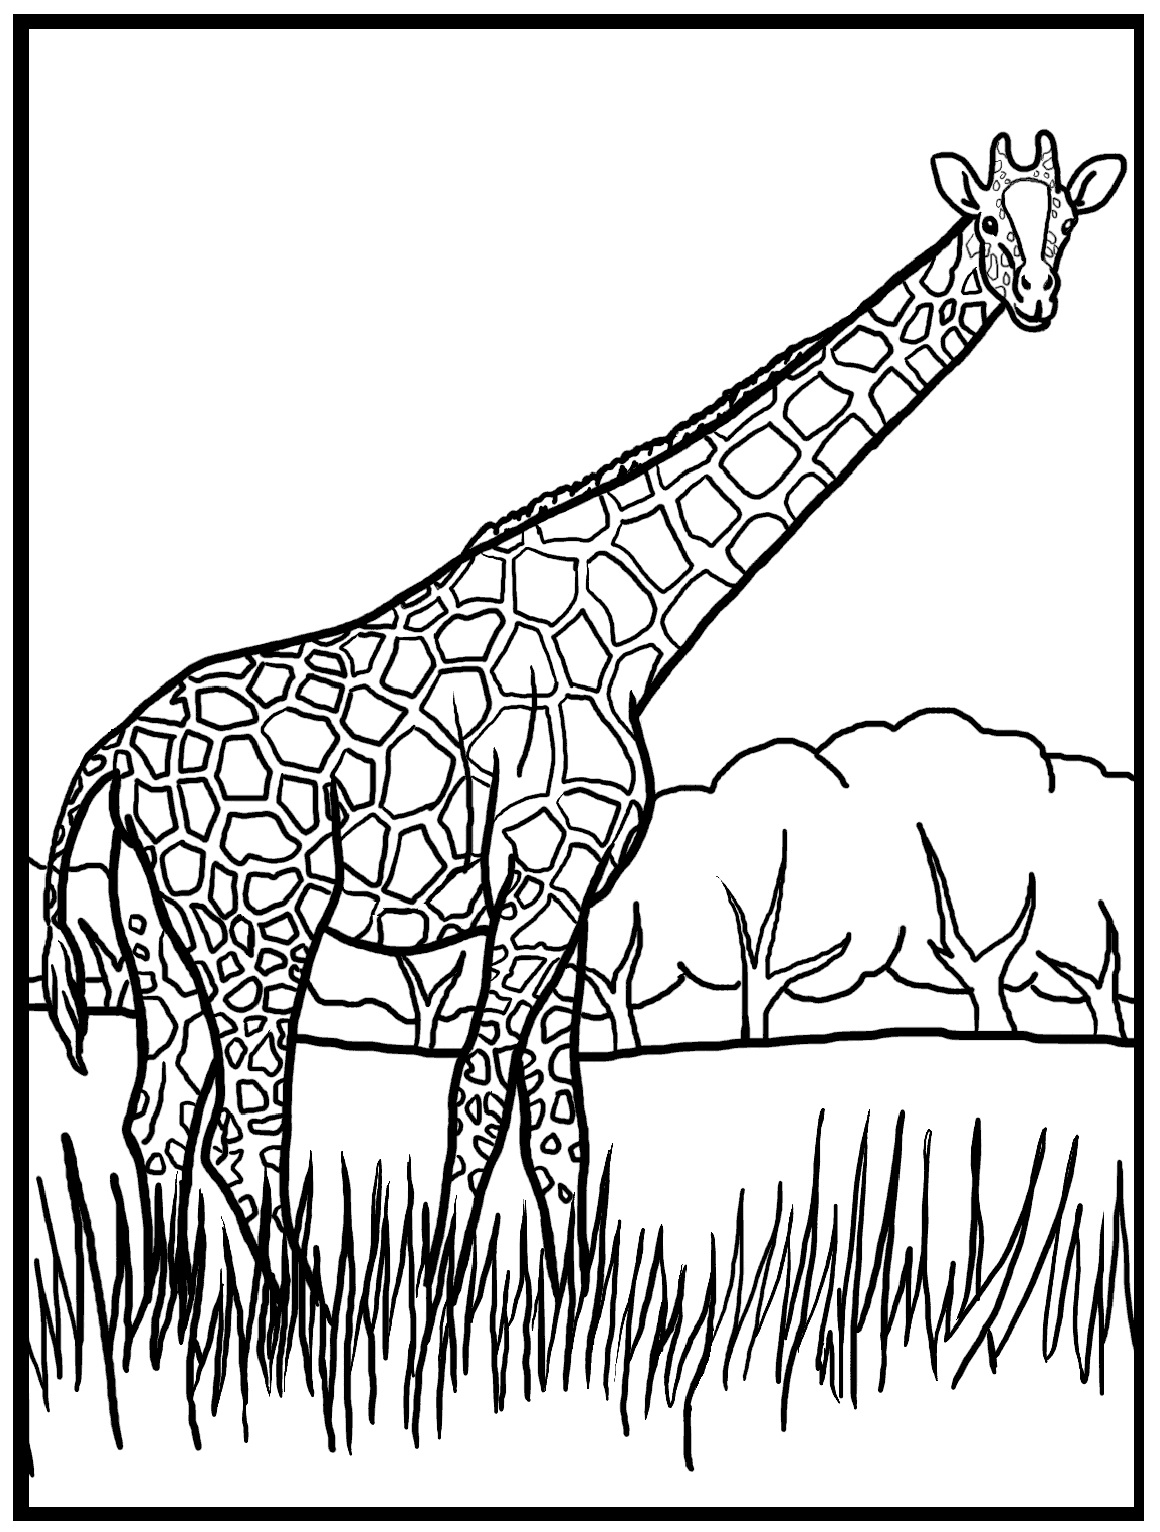 Giraffe Coloring Pages - Giraffe Coloring Pages – 9 Coloring